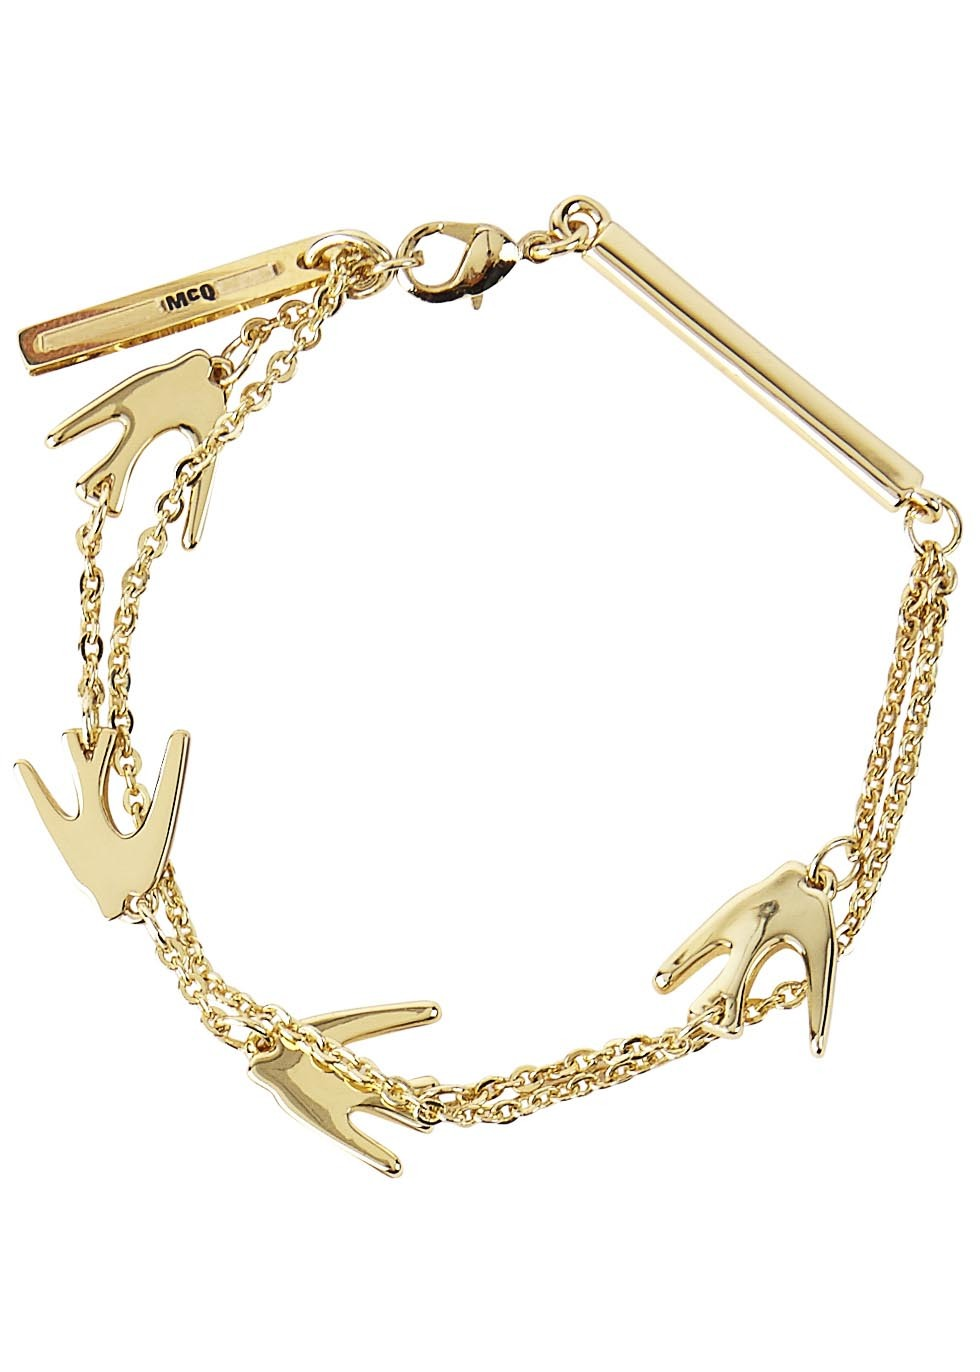 Gold Tone Swallow Bracelet - predominant colour: gold; occasions: casual, creative work; style: bangle/standard; size: standard; material: chain/metal; finish: metallic; season: s/s 2016